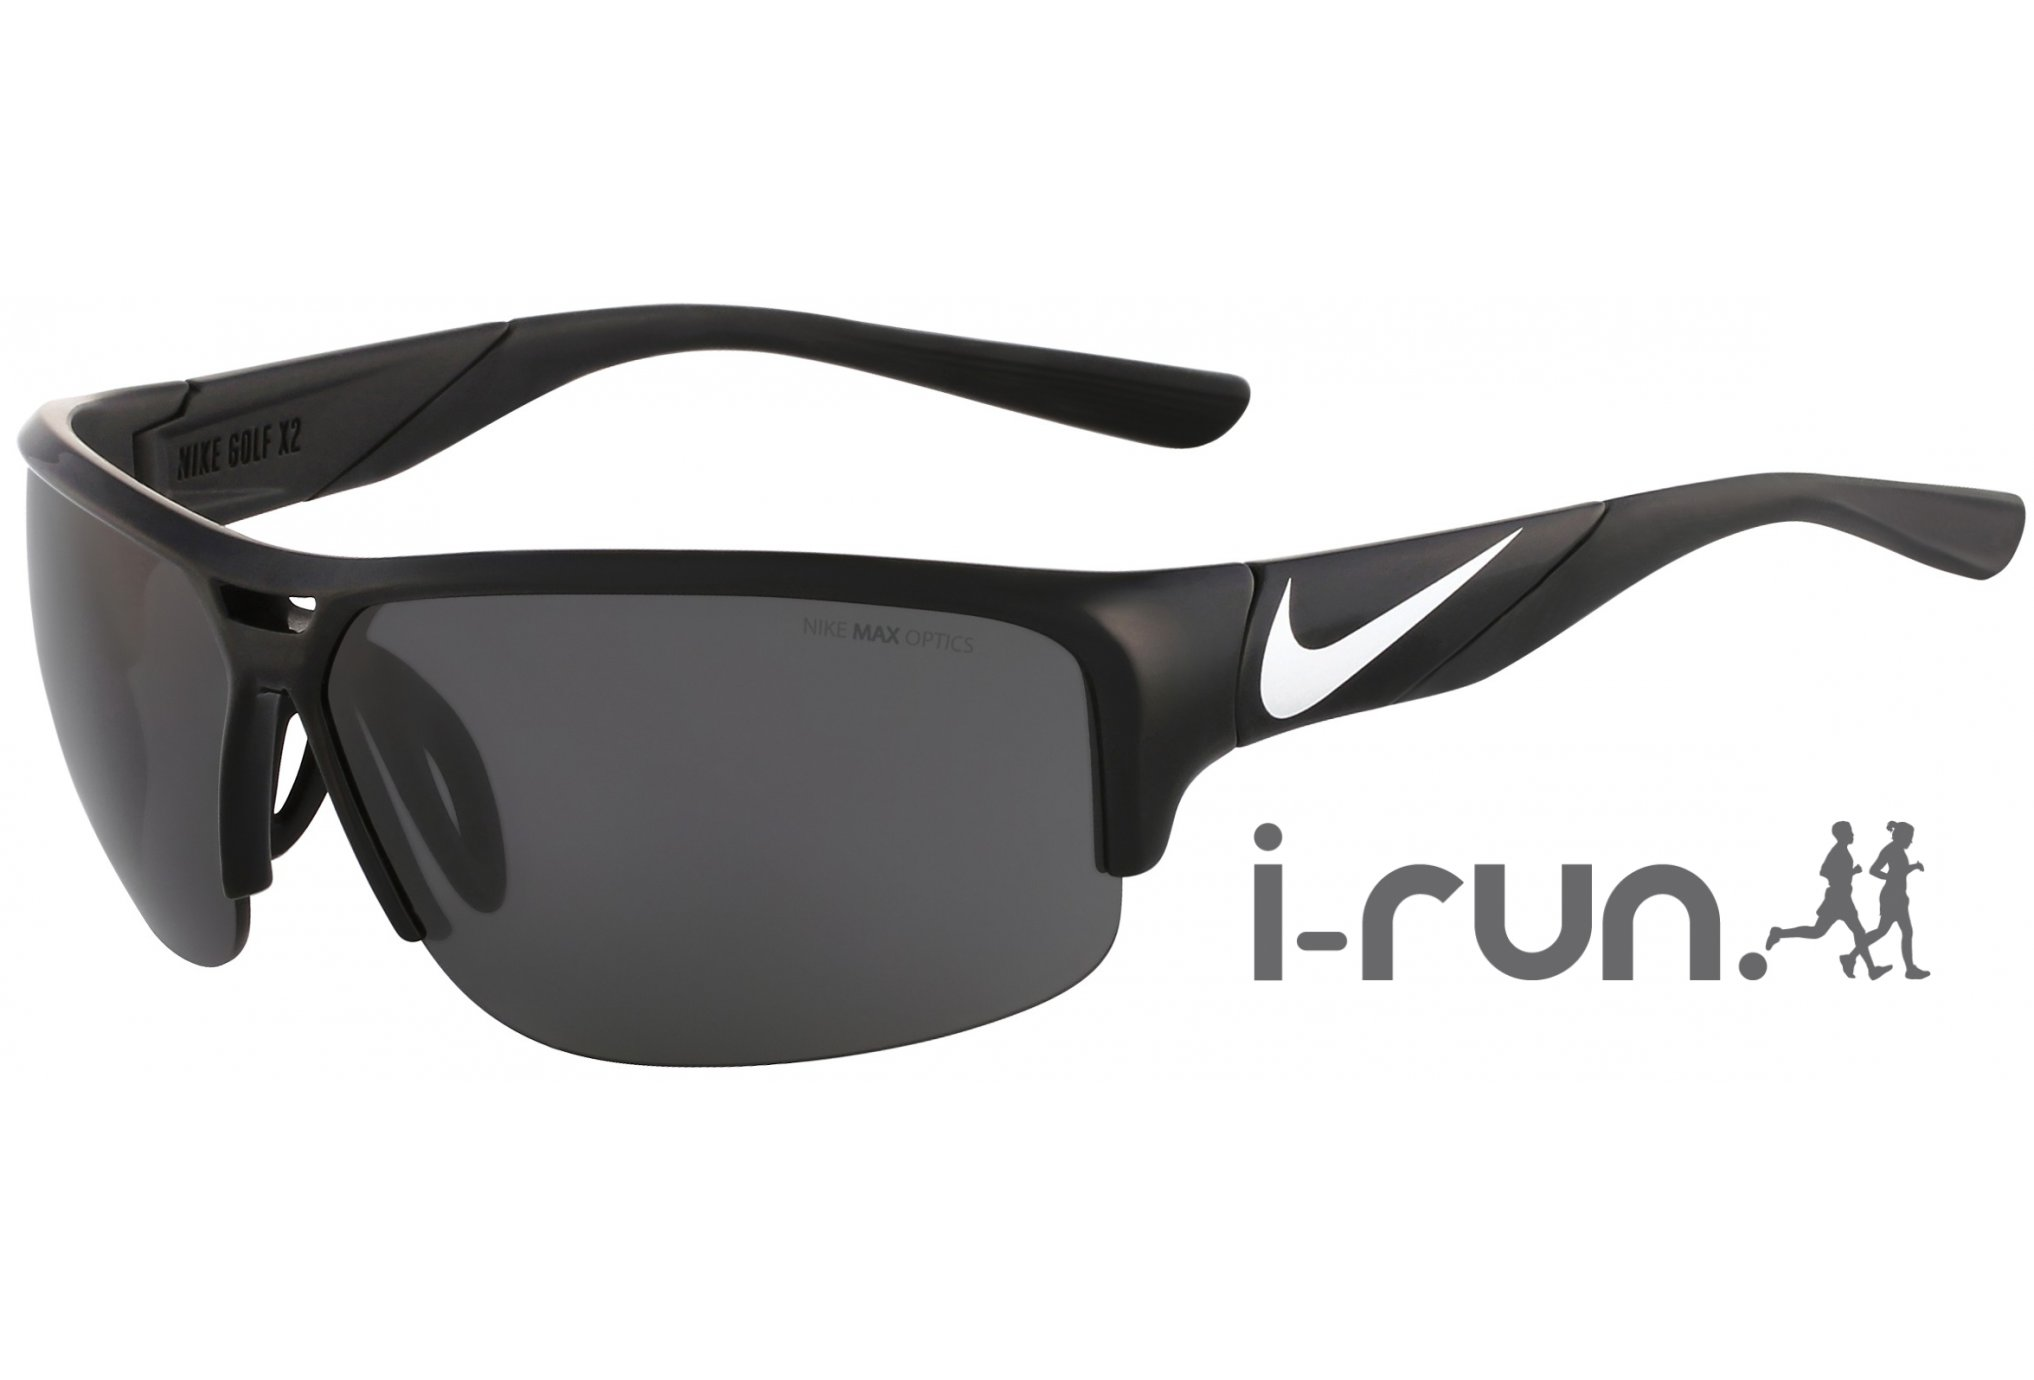 Nike Lunettes Golf X2 Lunettes